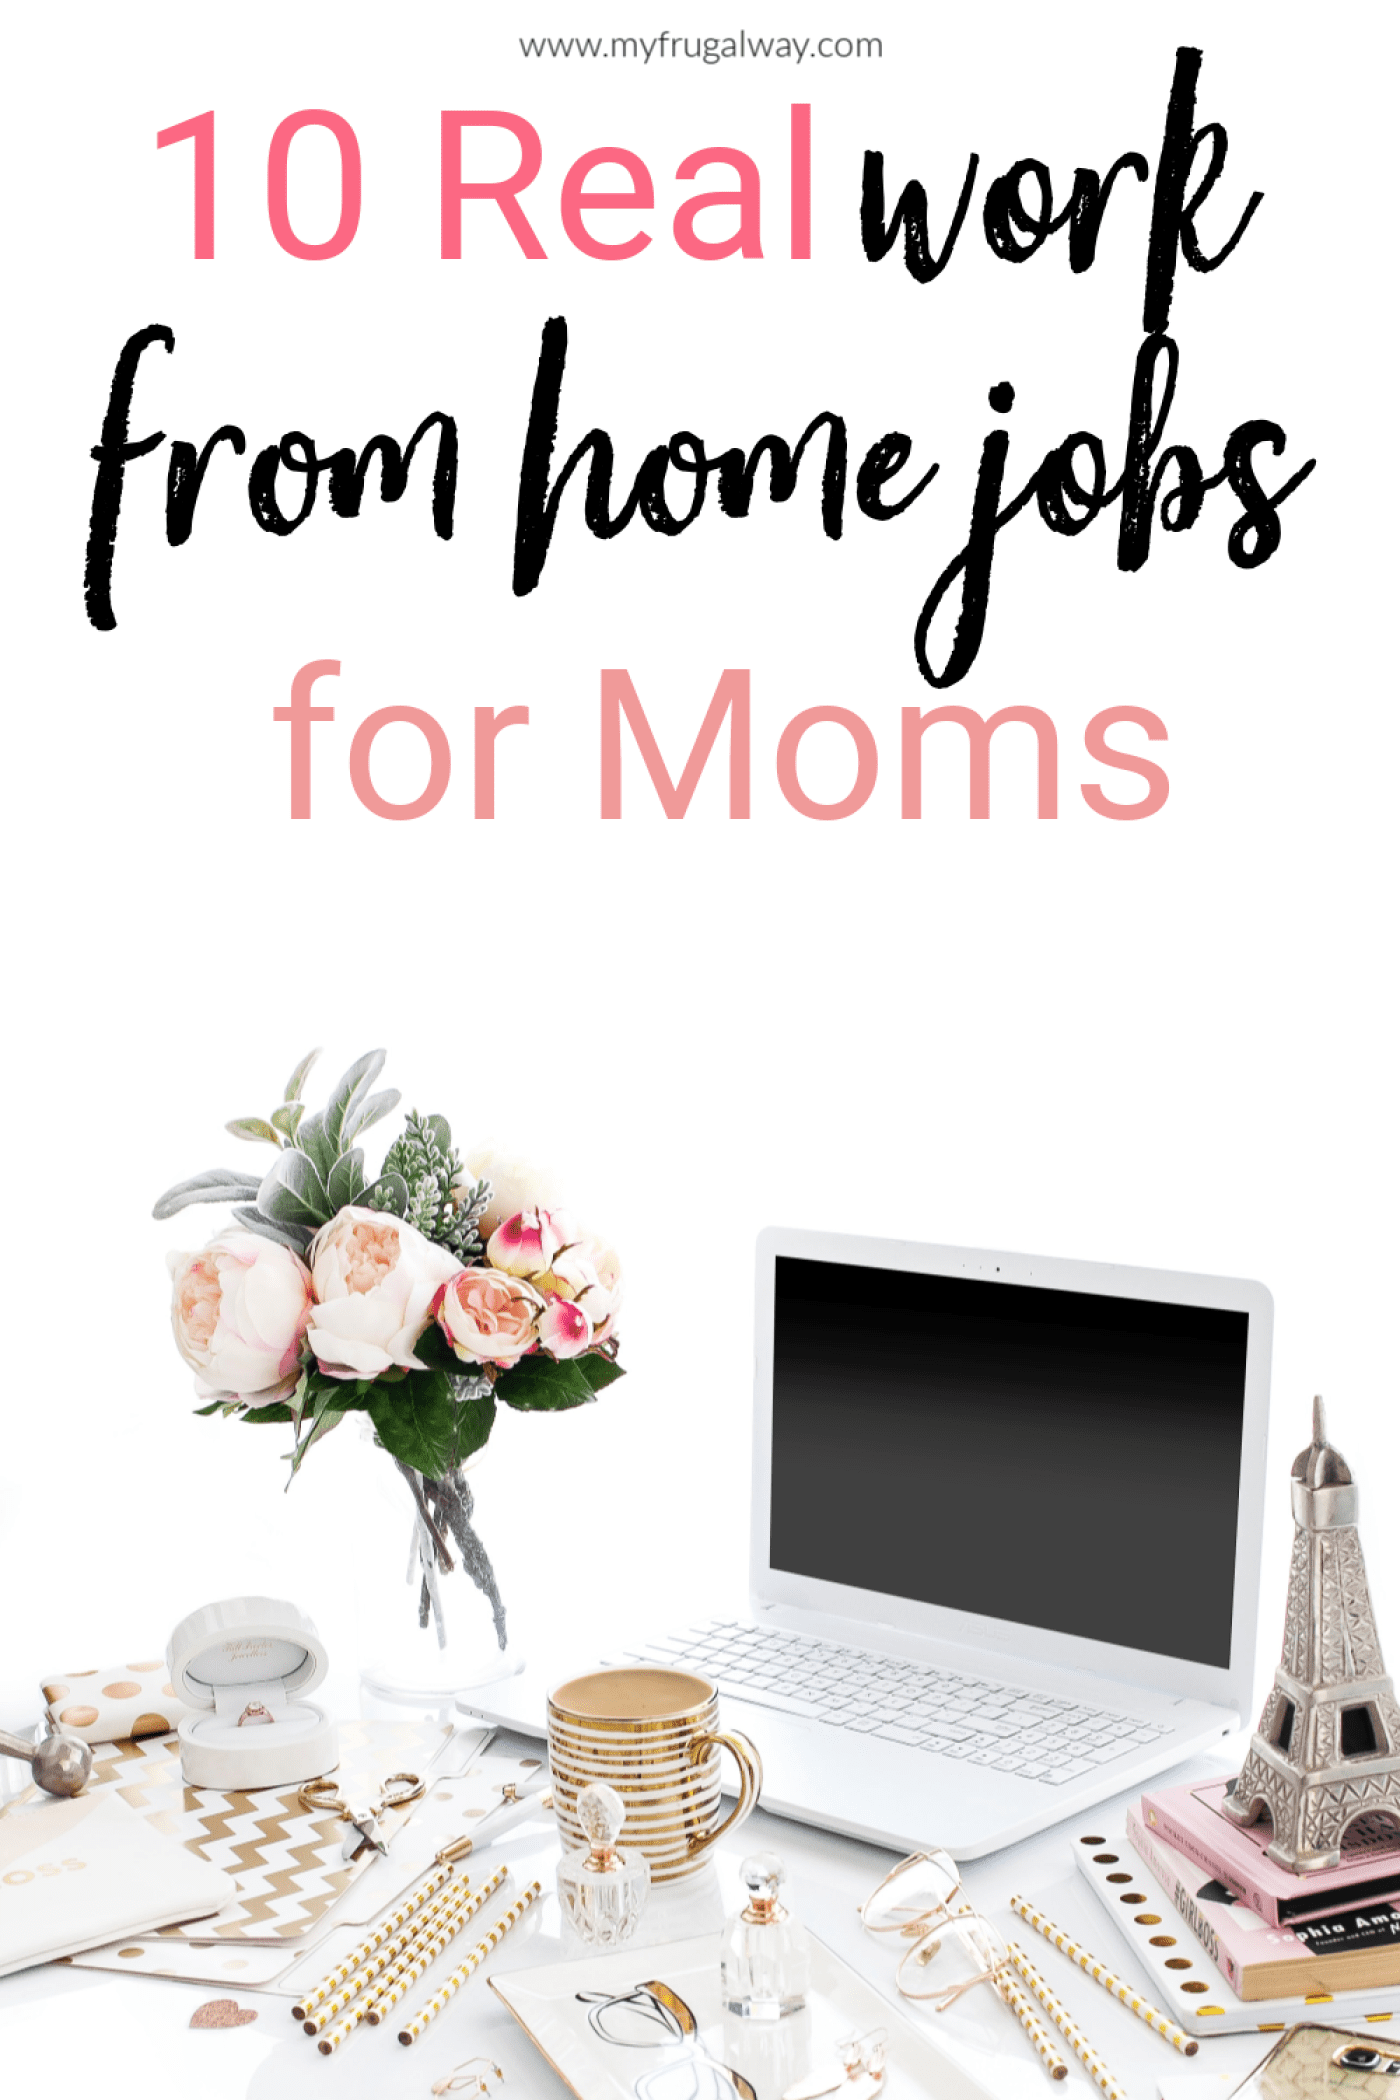 real work from home jobs for moms